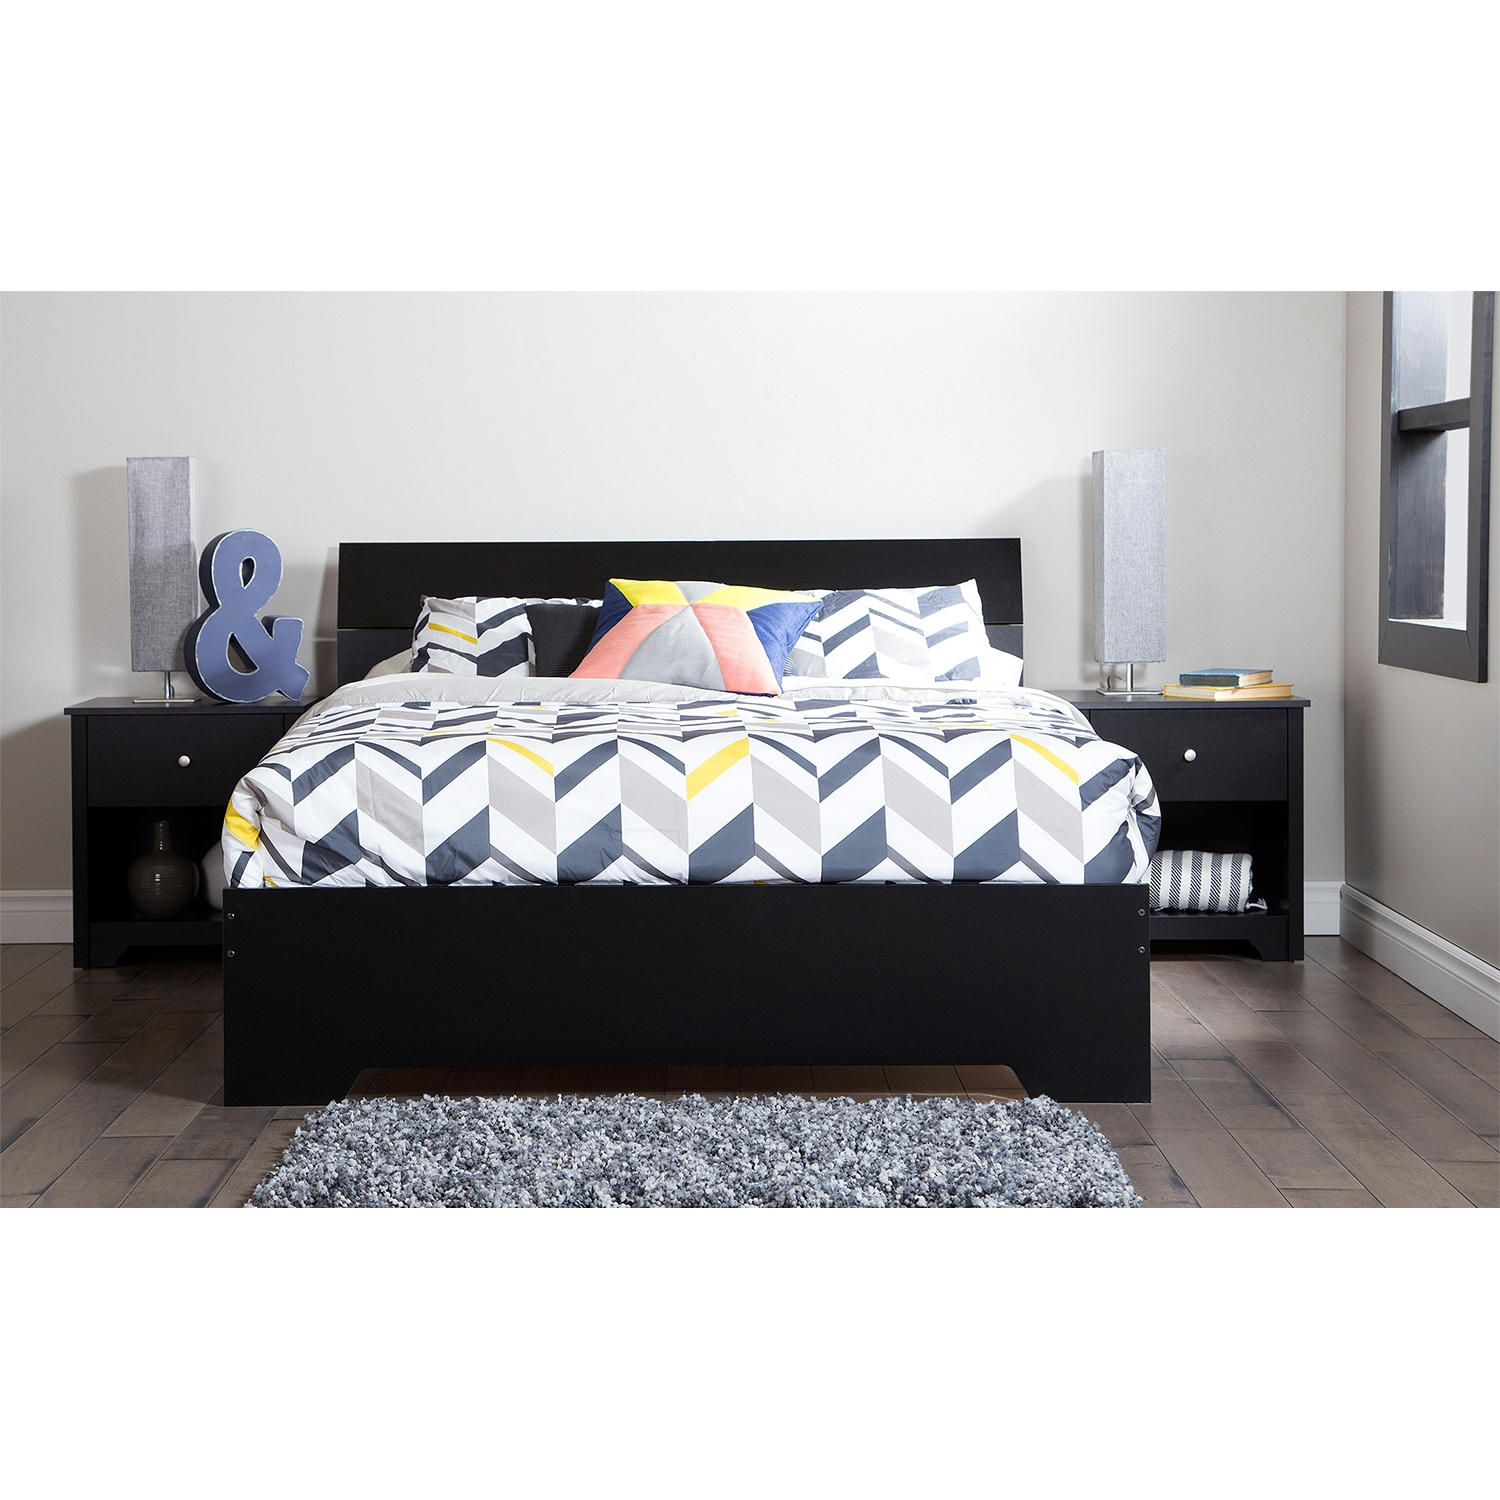 Vito Queen Platform Bed - Panel Headboard, Pure Black - SS-3170282